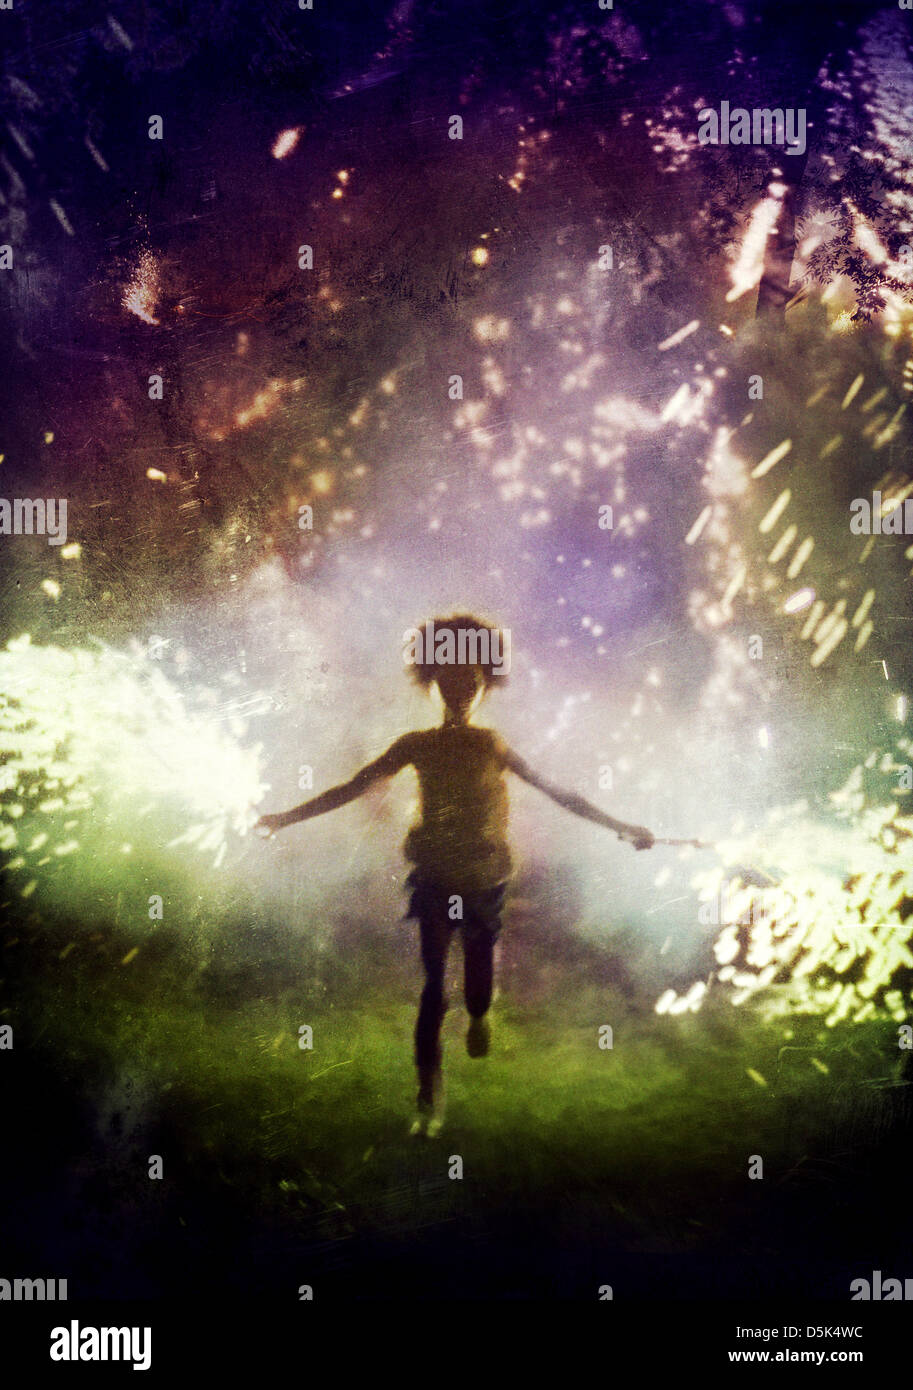 QUVENZHANE WALLIS BEASTS OF THE SOUTHERN WILD (2012) - Stock Image